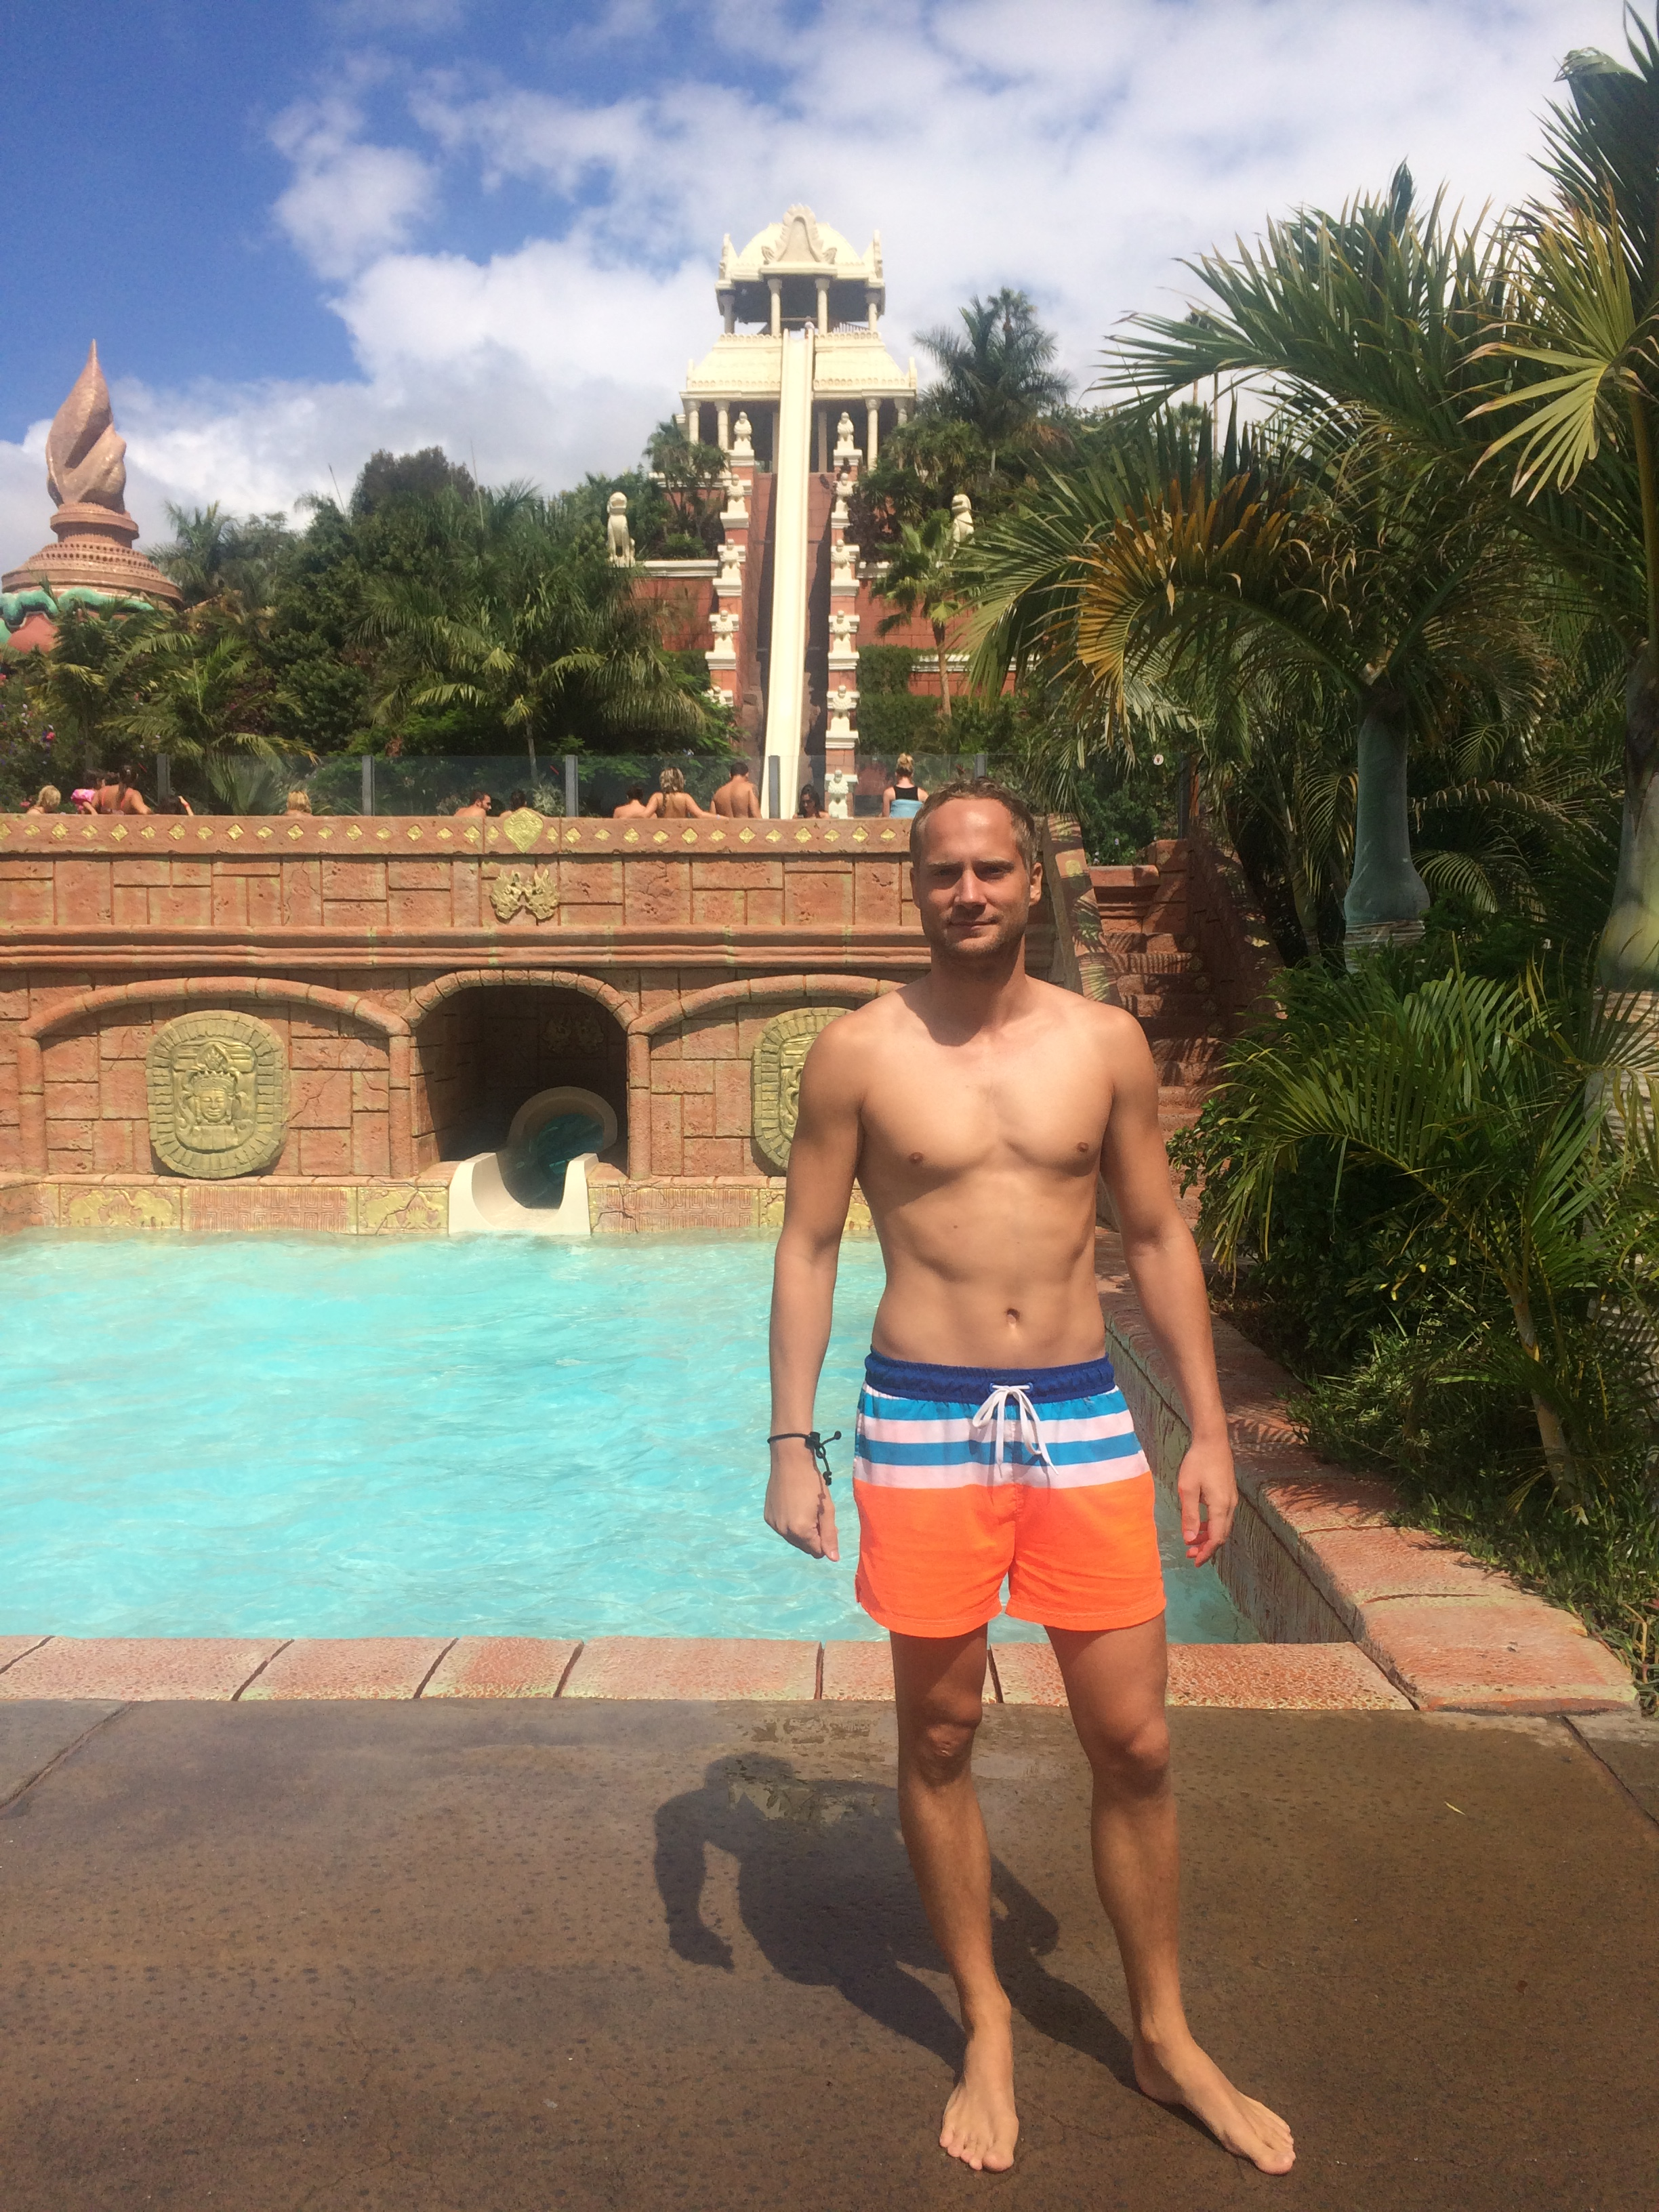 Siam park - Tower of power